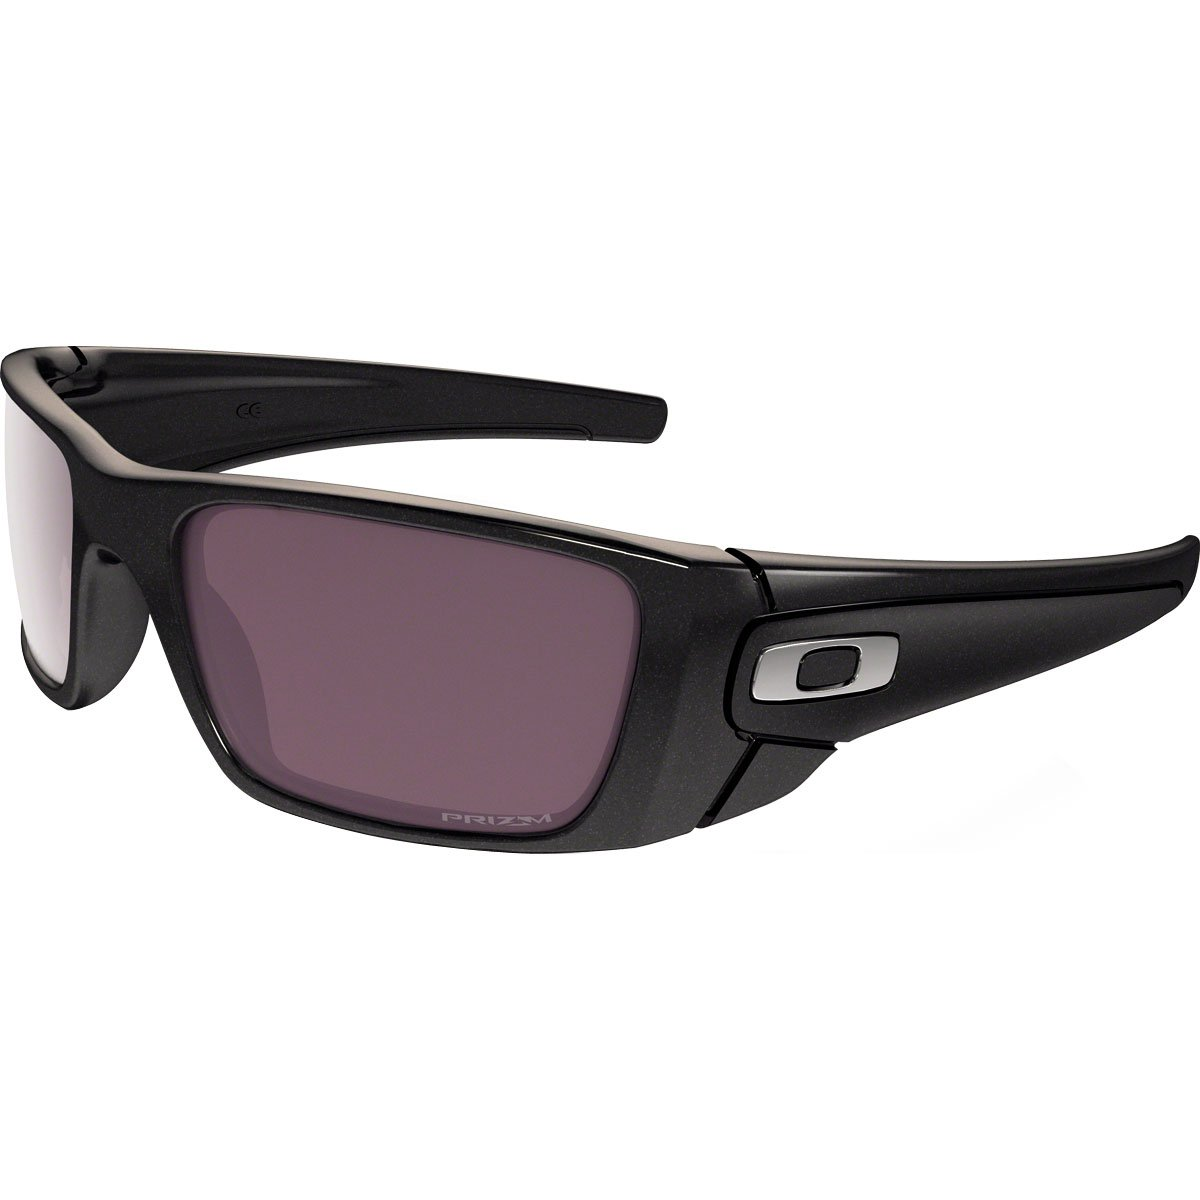 Oakley Fuel Cell Polarized Iridium Rectangular Sunglasses, Granite w/Prizm Daily Polarized, 60 mm by Oakley